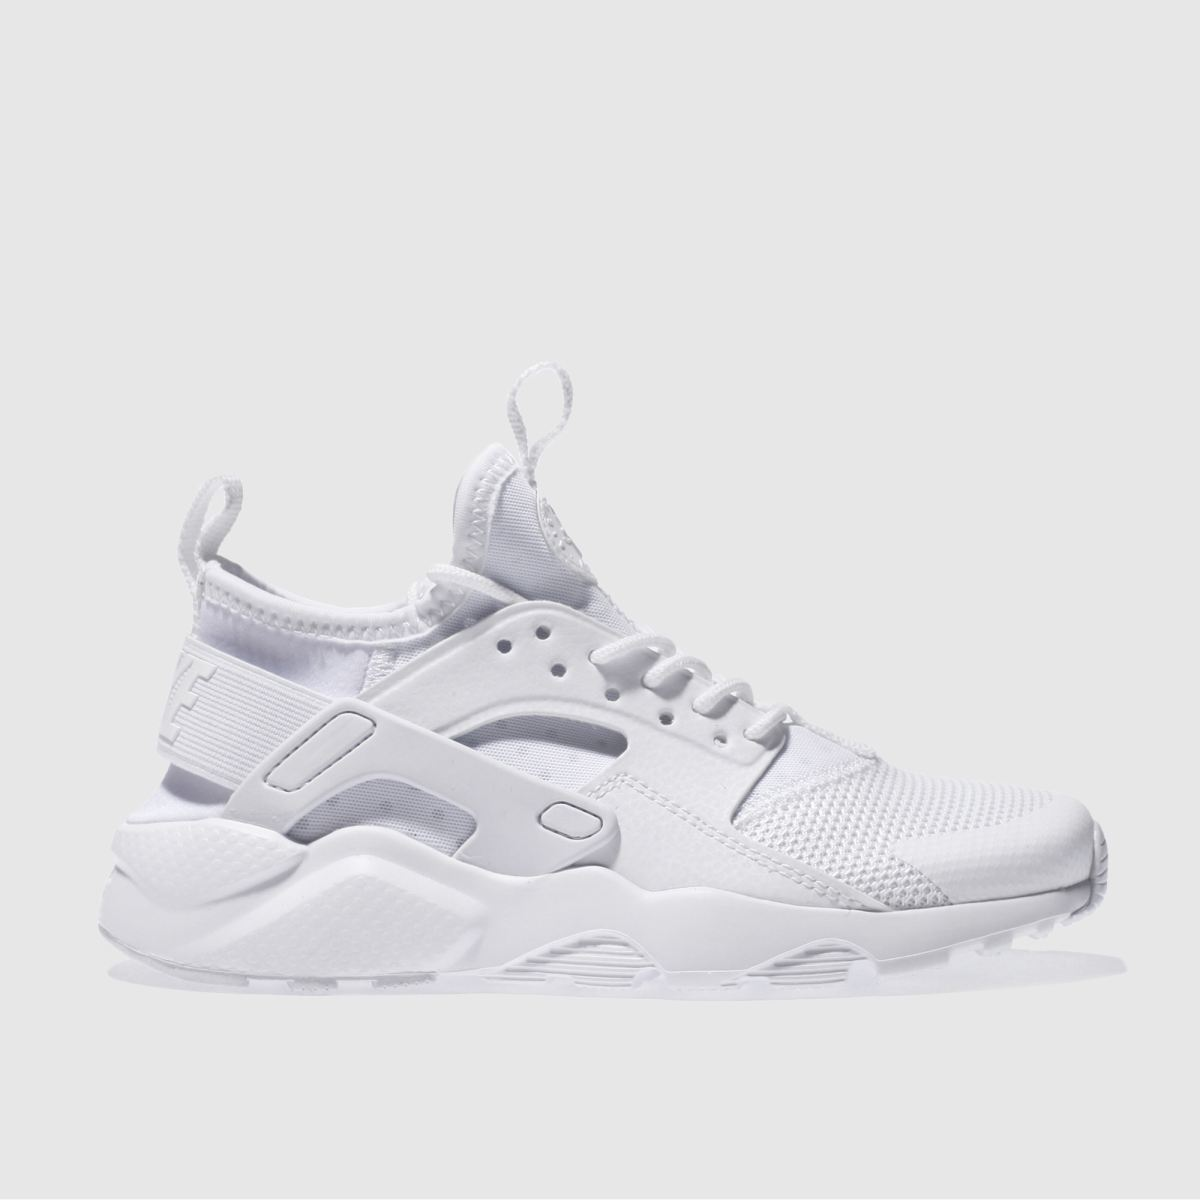 reputable site 49d02 0ea04 Nike Air Huarache Trainers  Compare Prices at FOOTY.COM